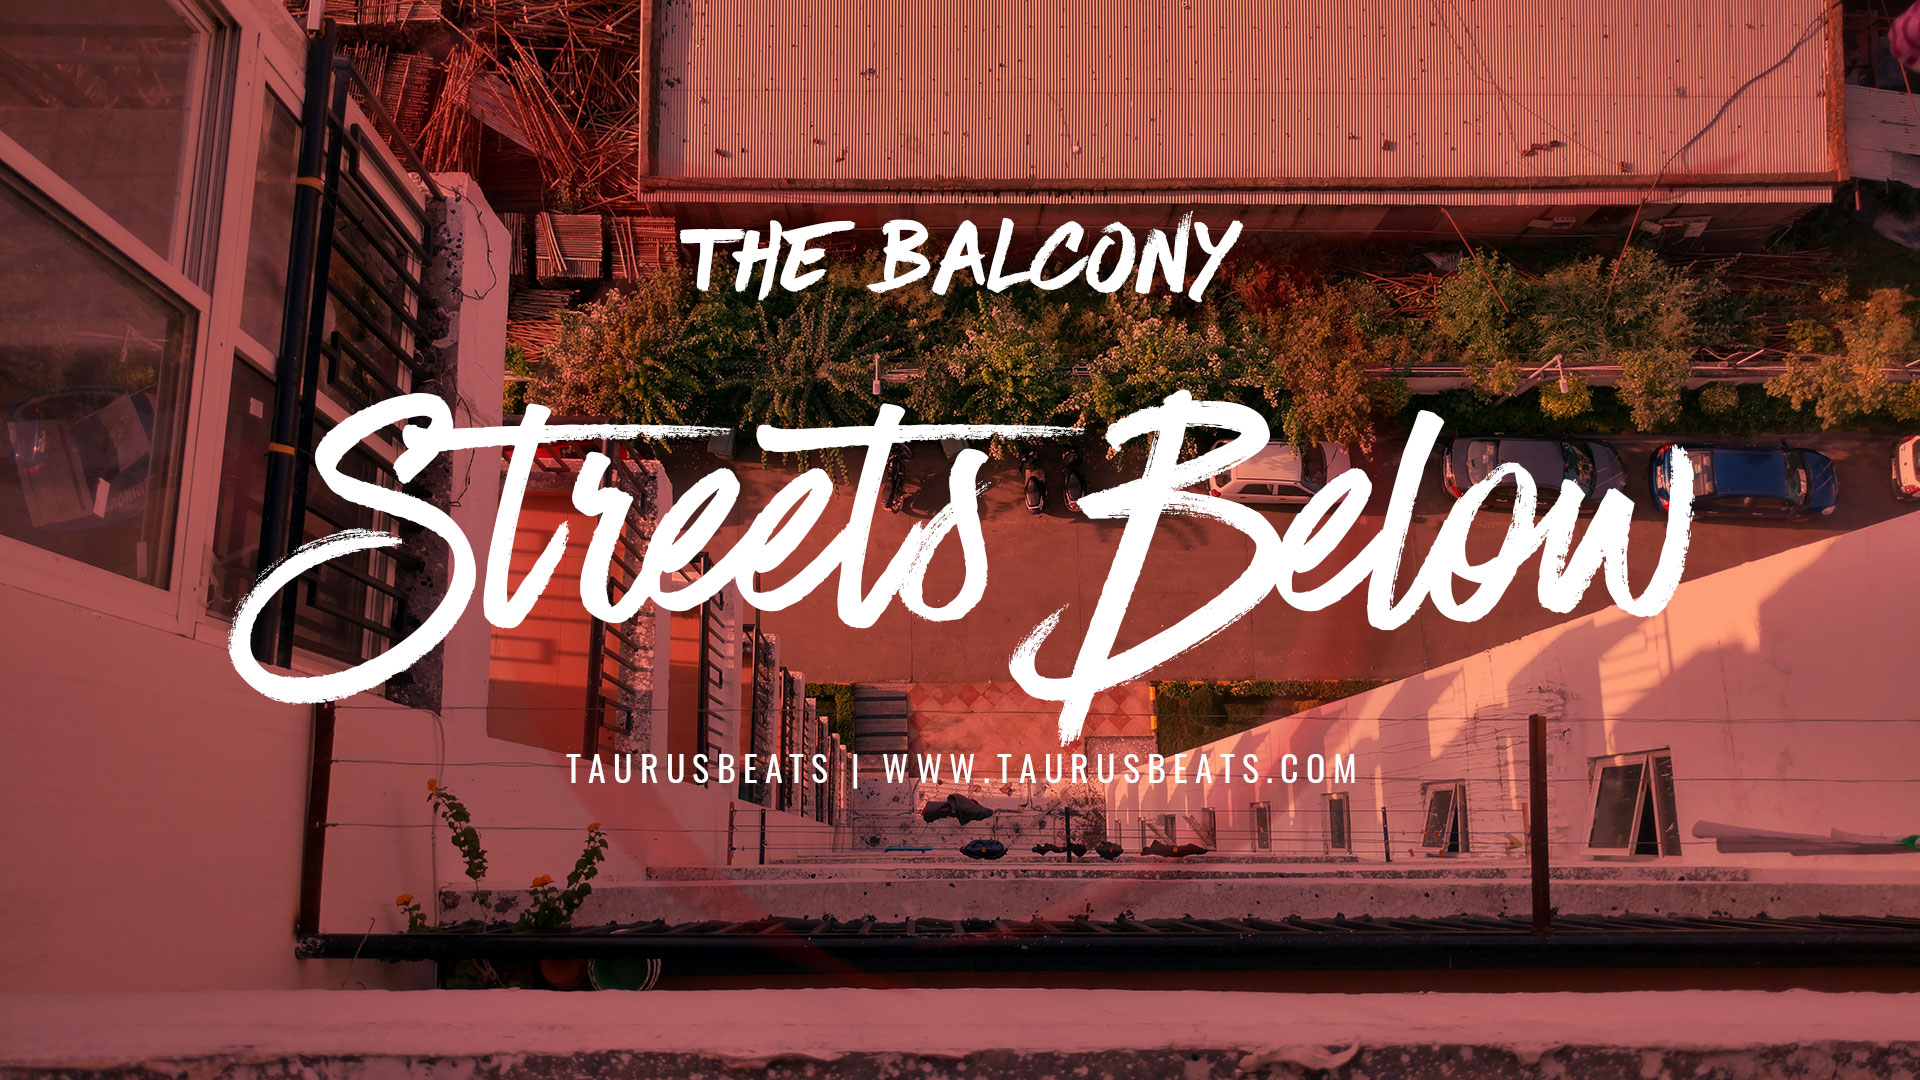 image for Streets Below